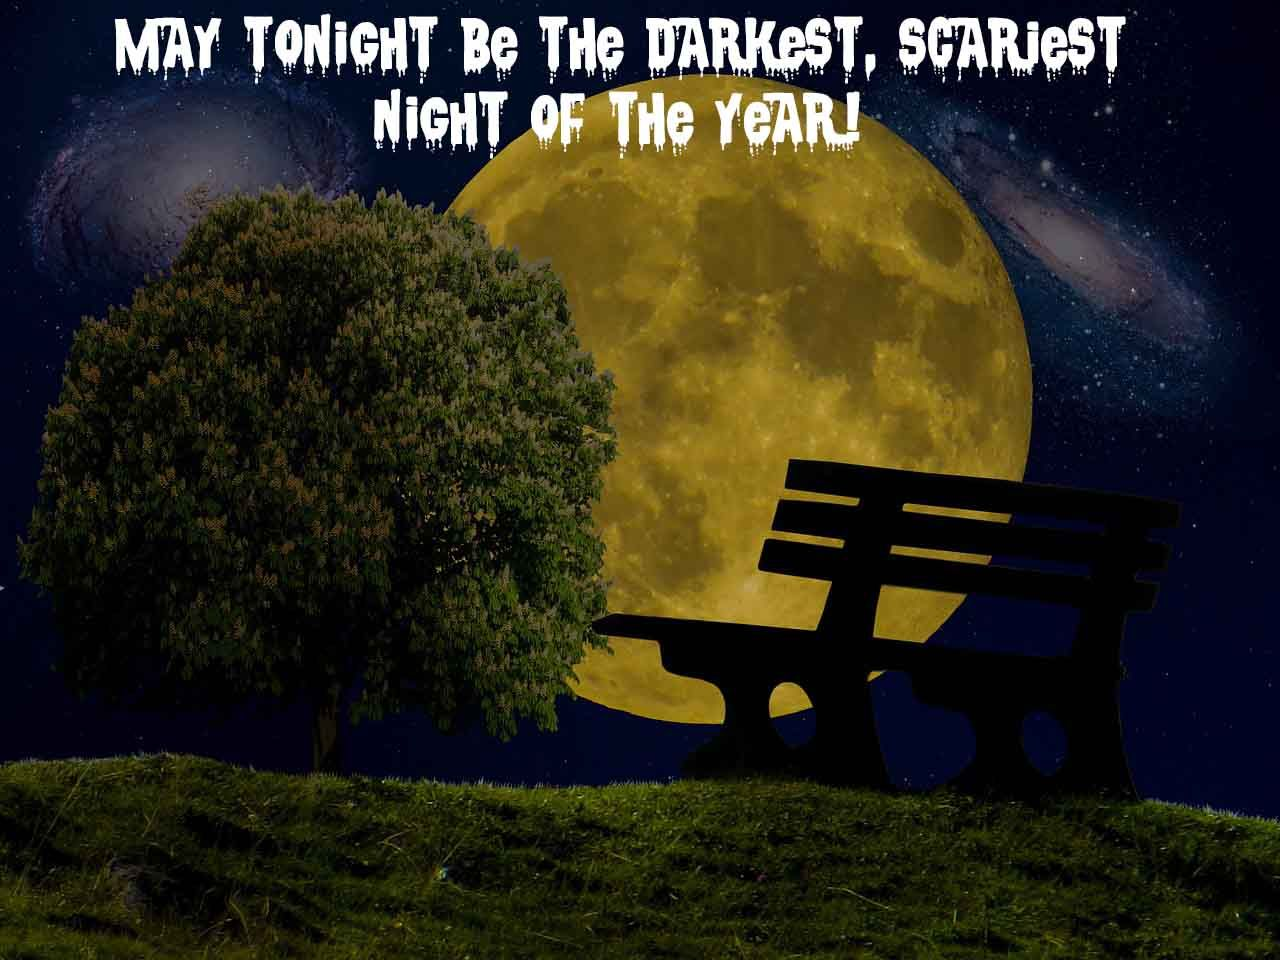 Top 50 Scary Quotes, Scary Halloween Sayings,scary Halloween Jokes